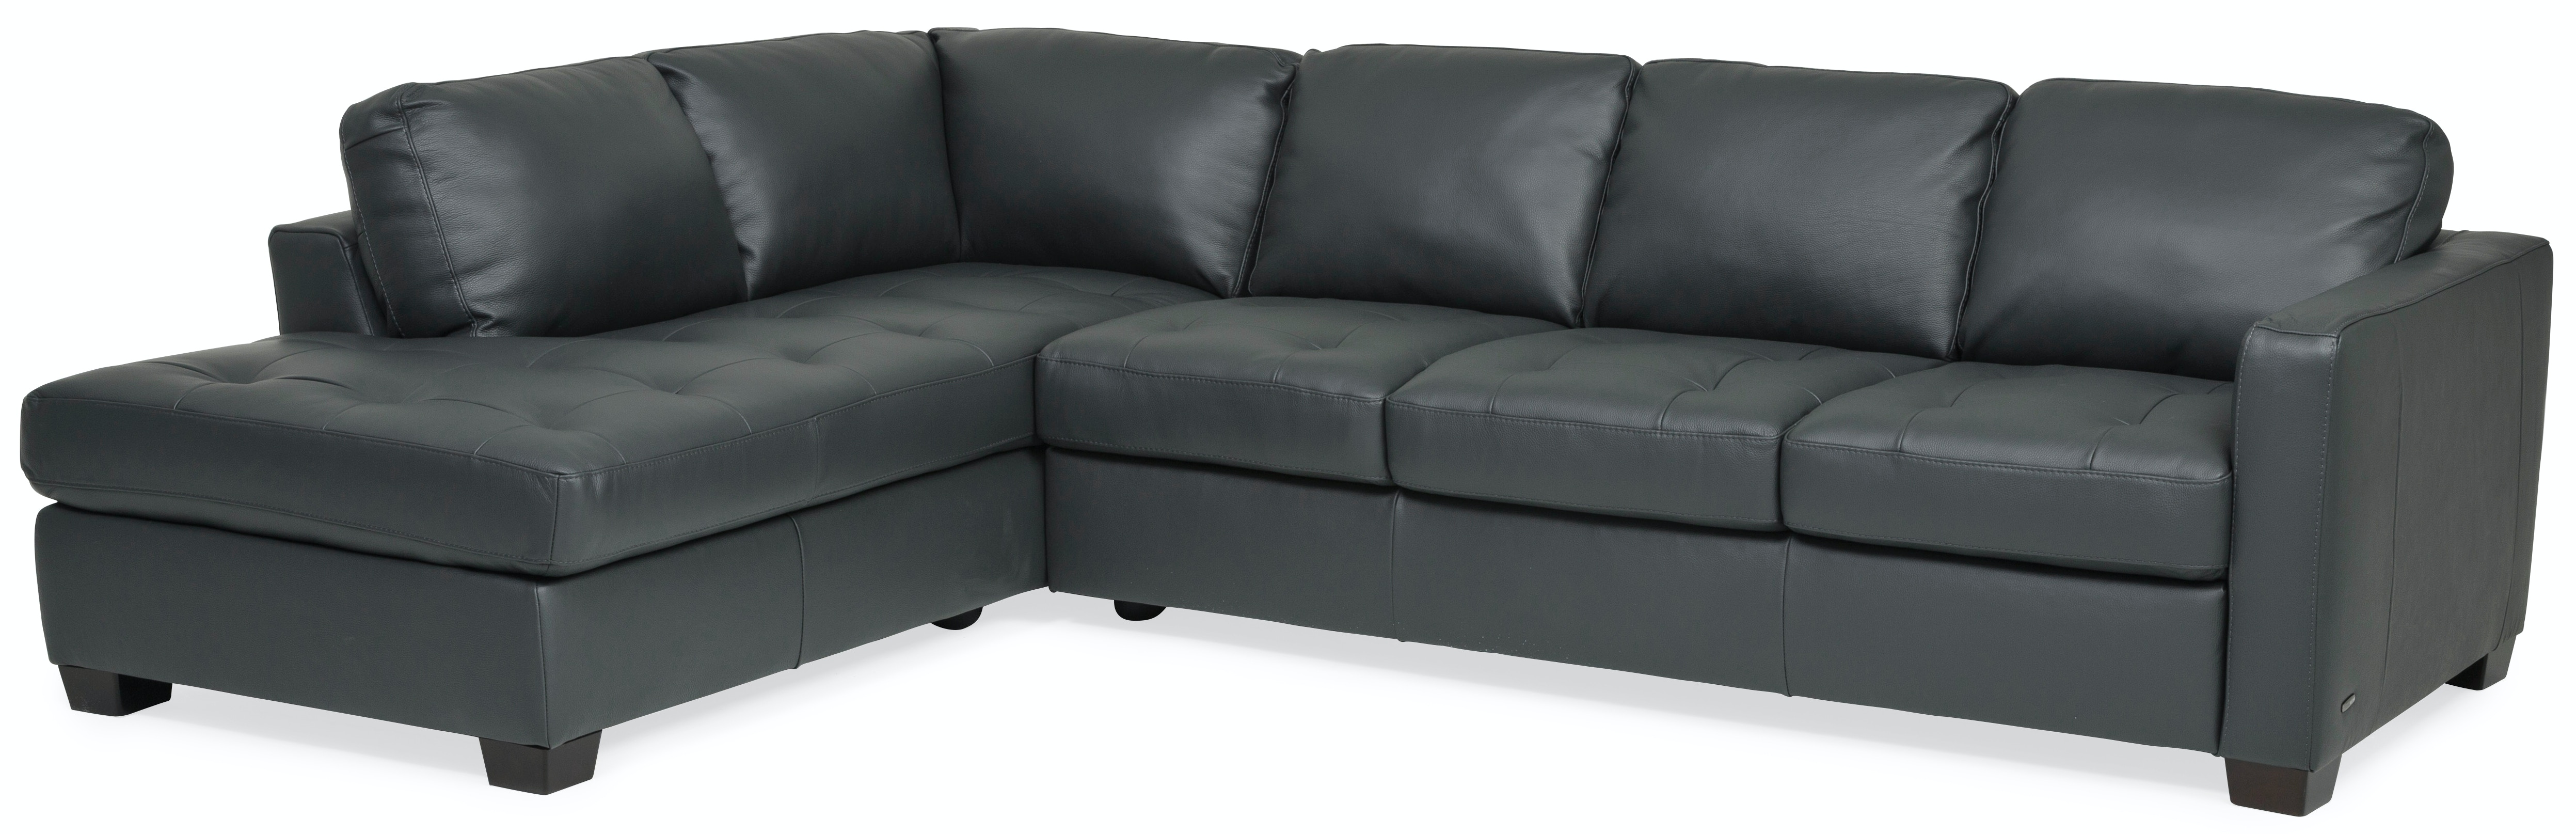 Denver Leather Chaise Sectional (LAF)   ANTHRACITE